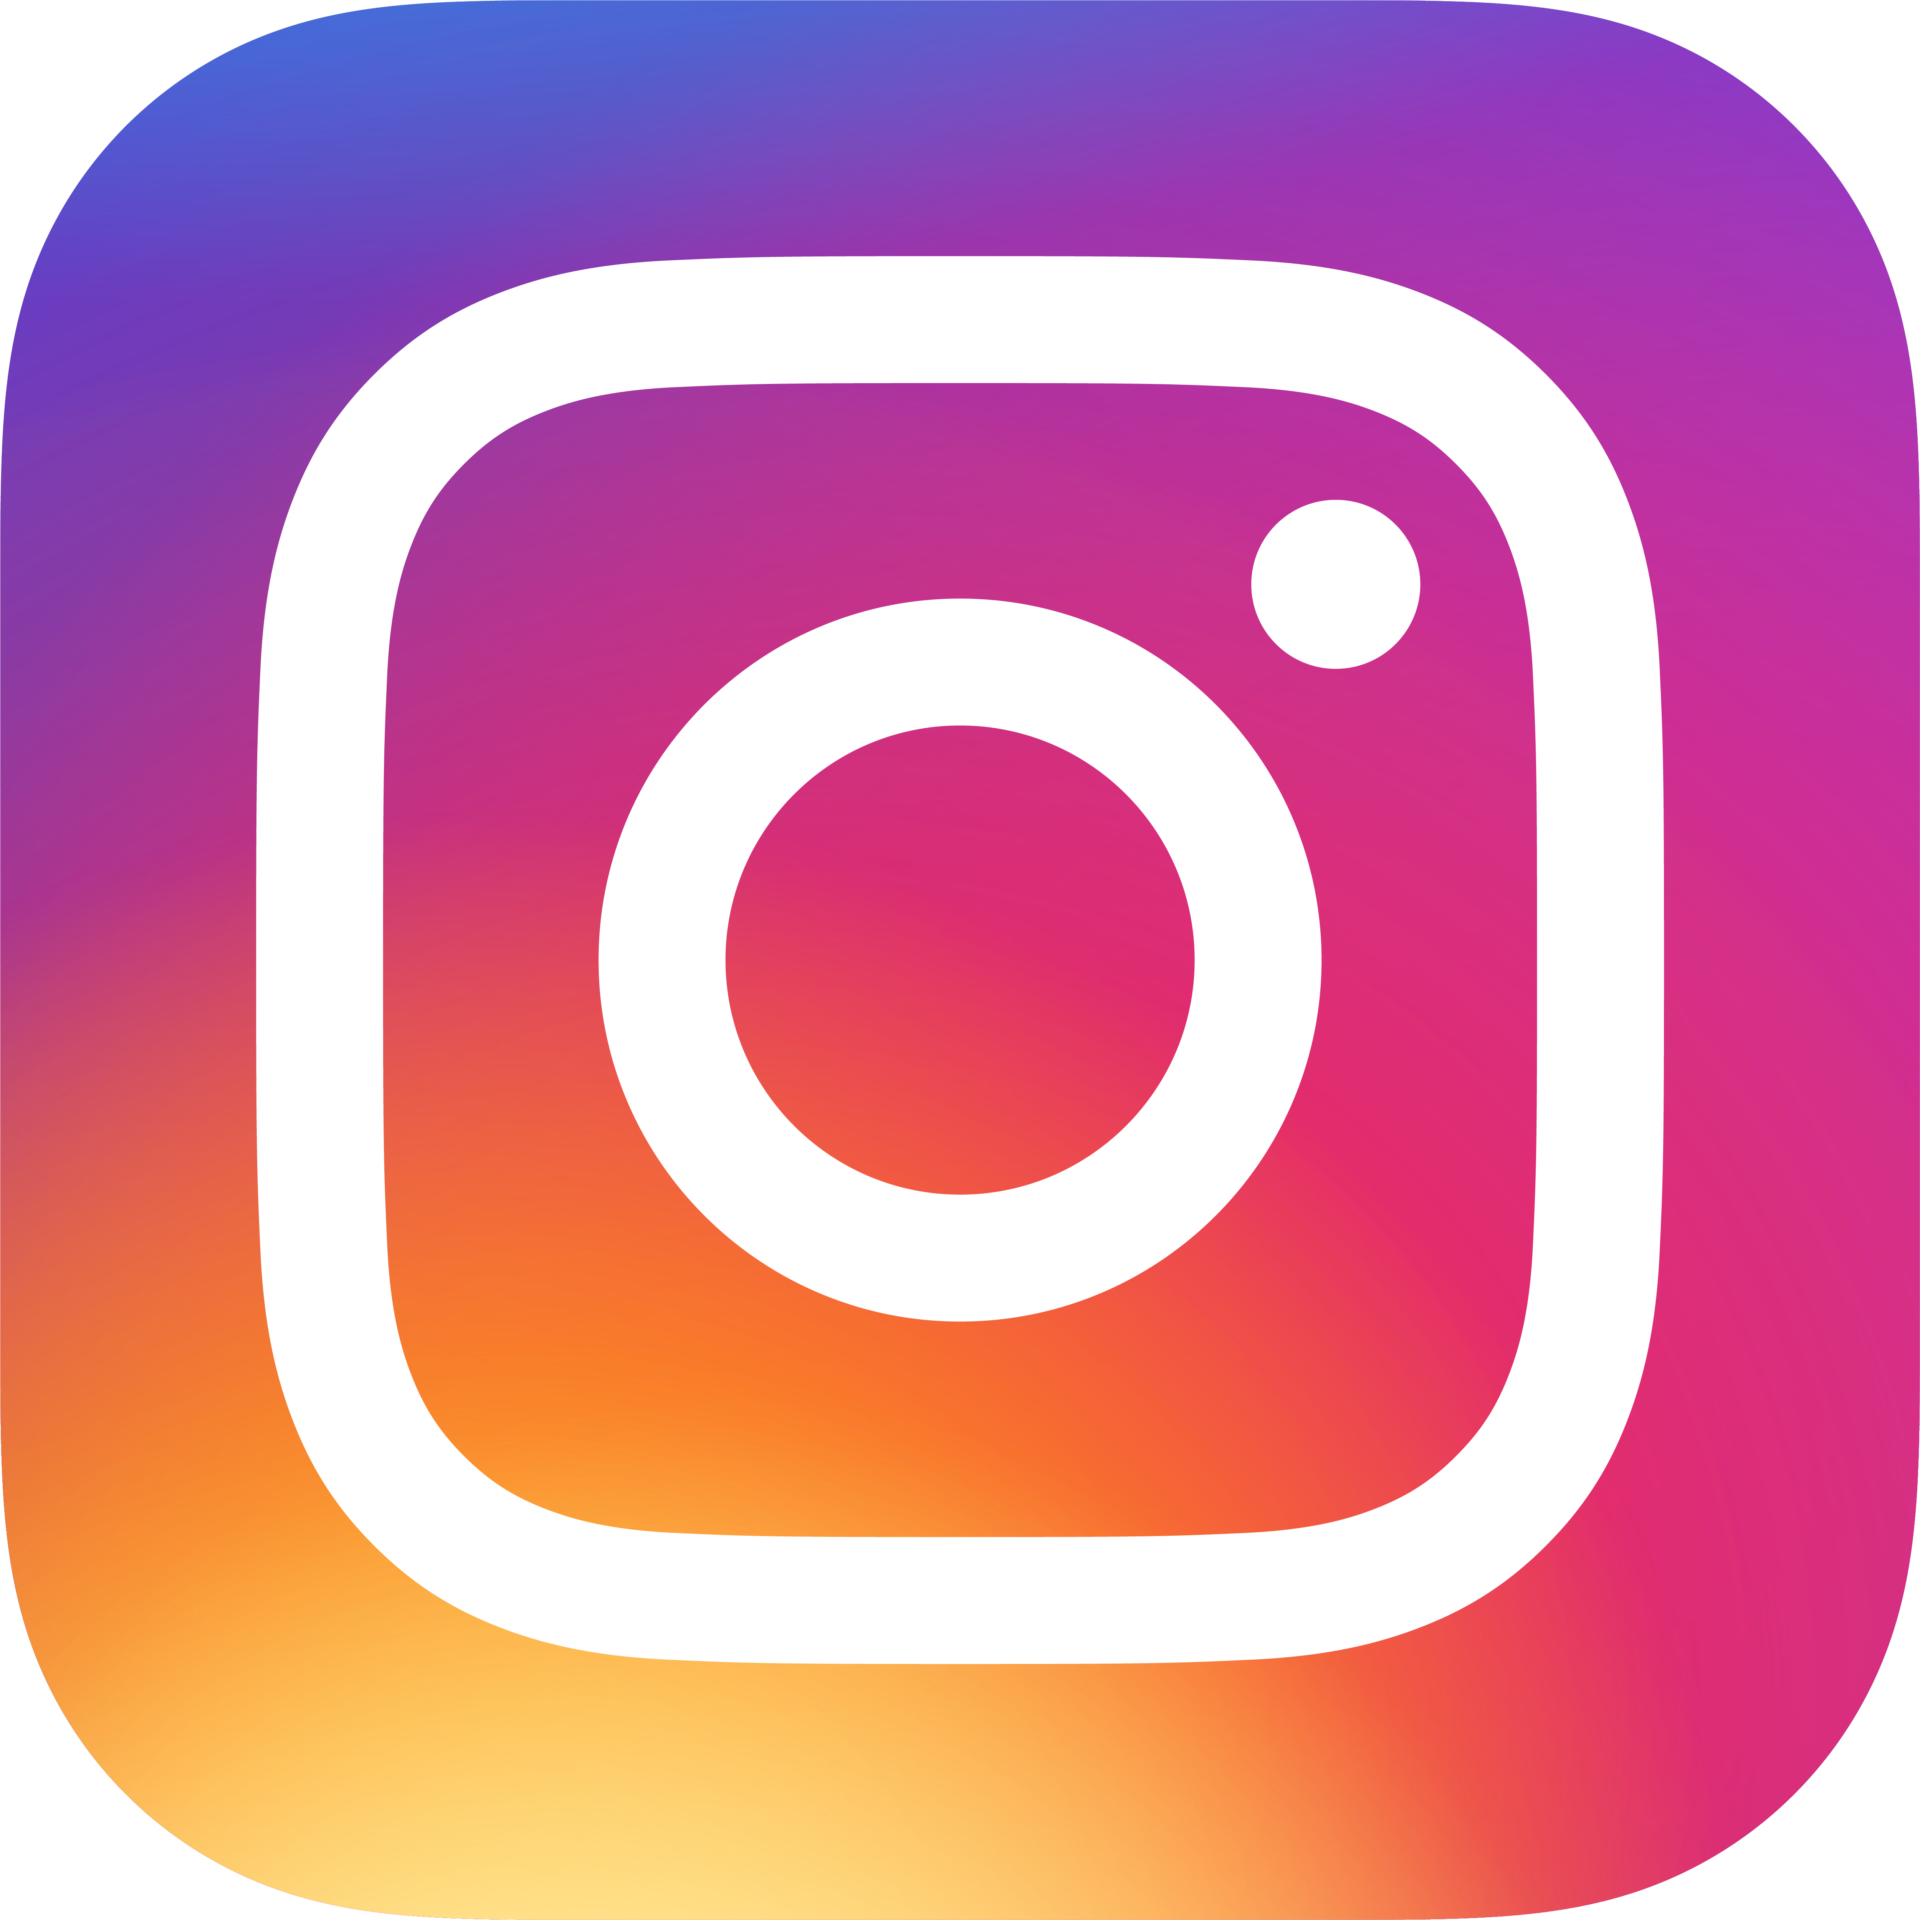 Instagram_AppIcon_Aug2017-1920x1920.png